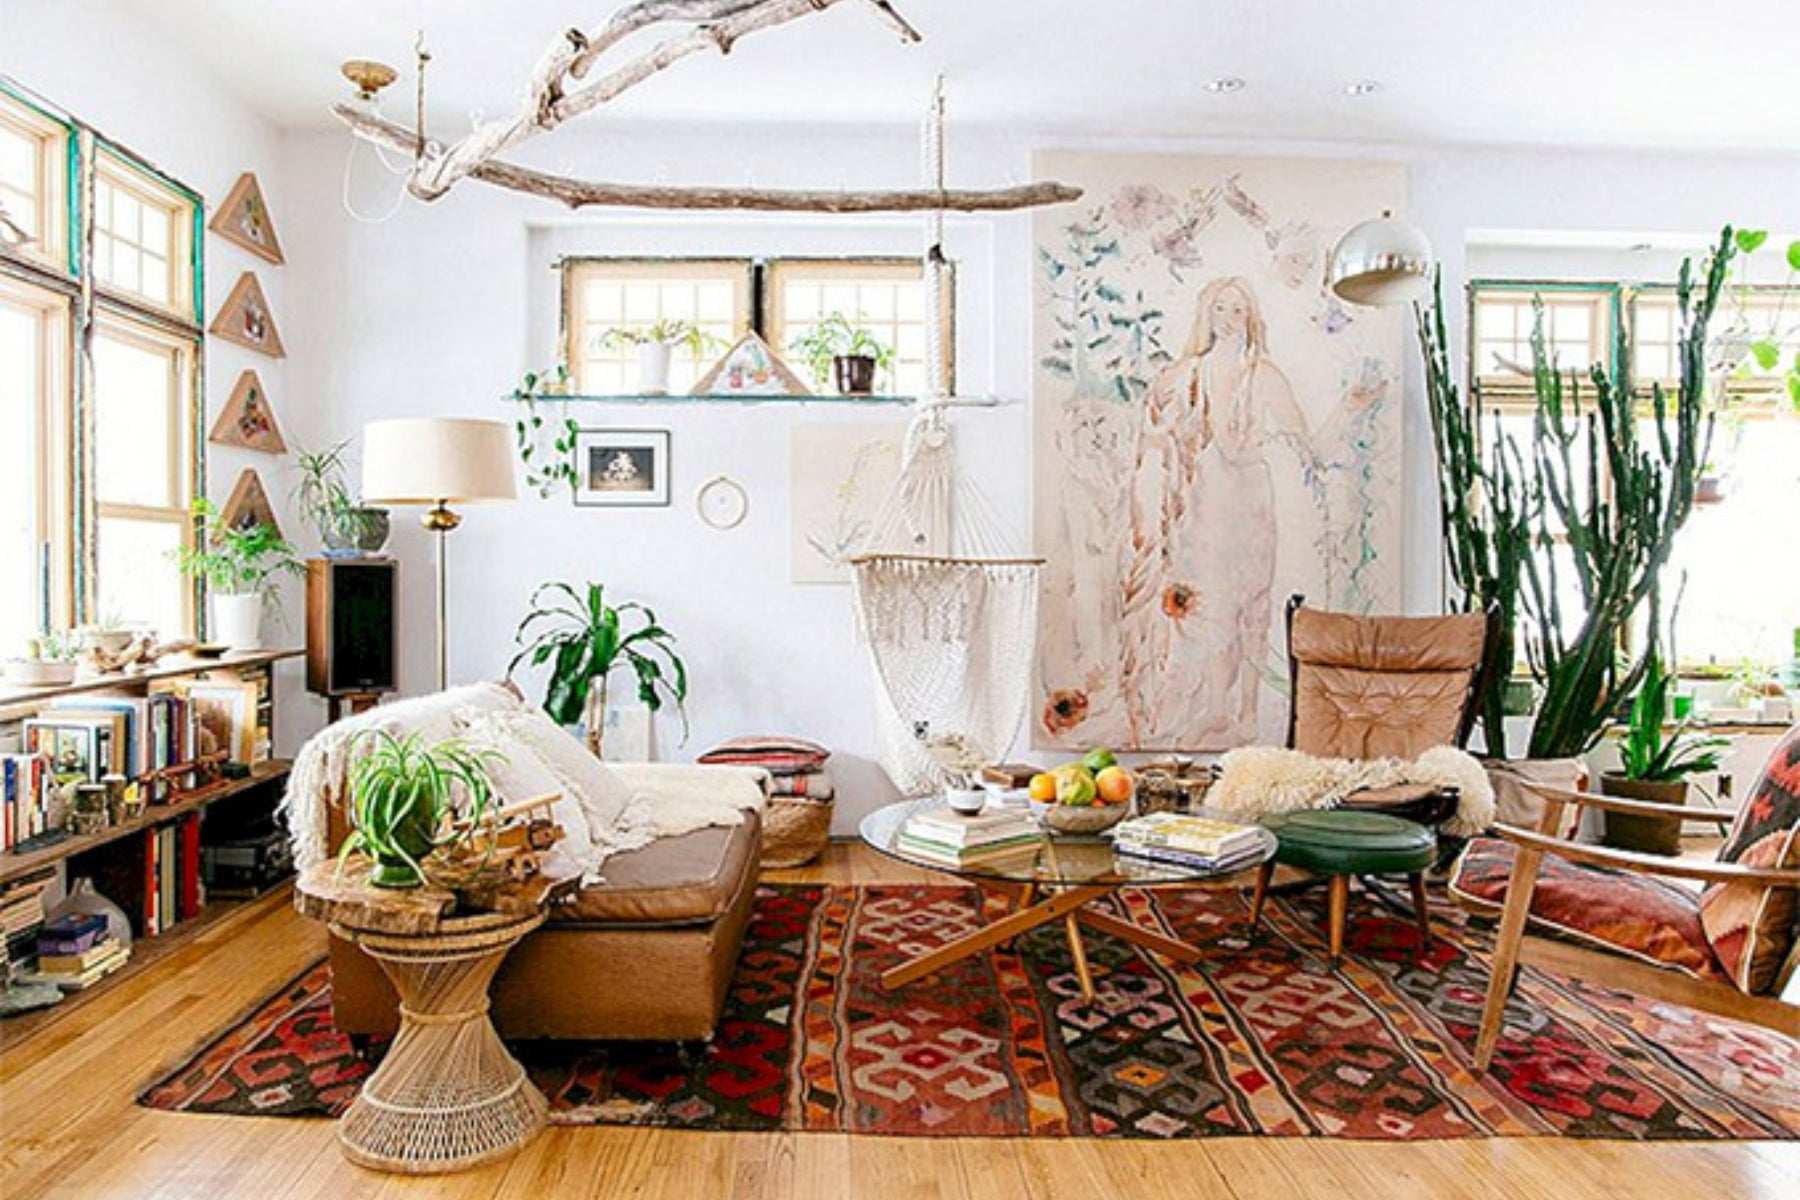 Styling Revival Ceramics in a Bohemian Space